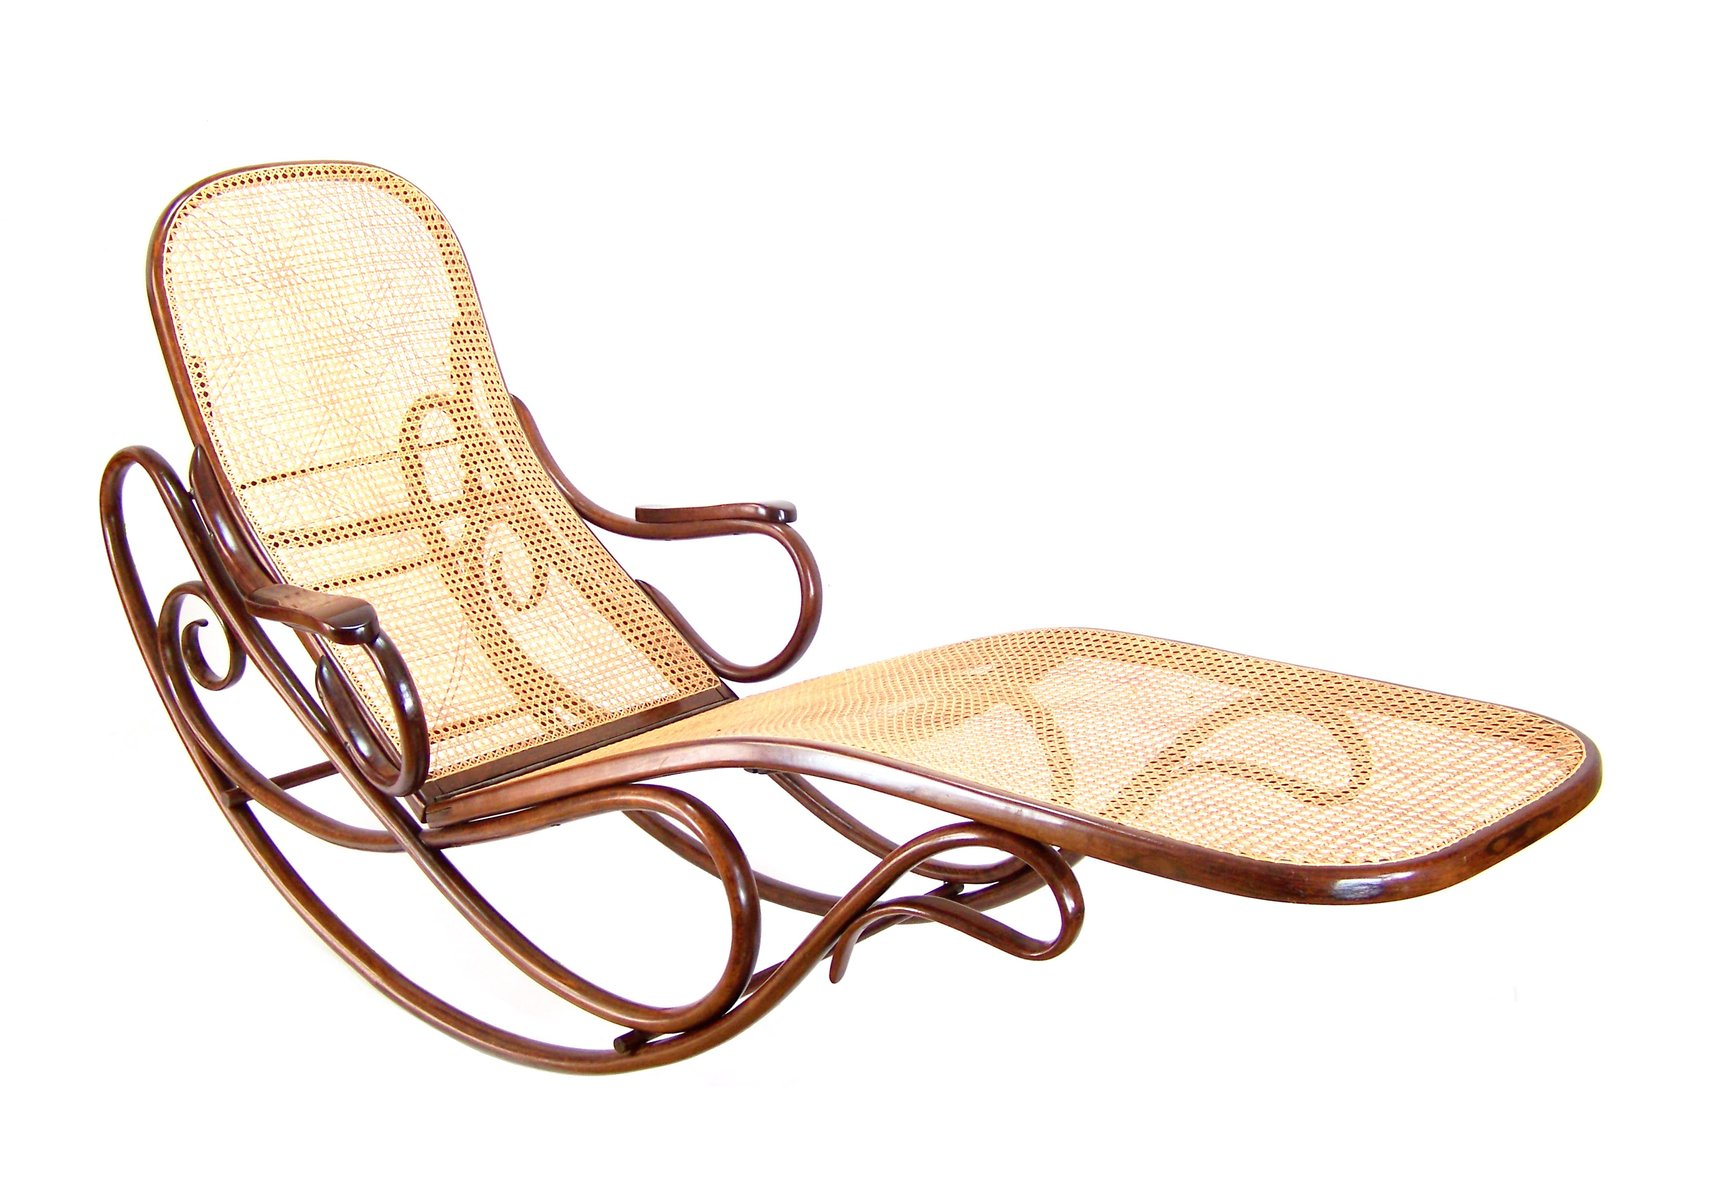 No 7500 rocking chaise longue from gebr der thonet 1880s for Chaise longue for sale ireland